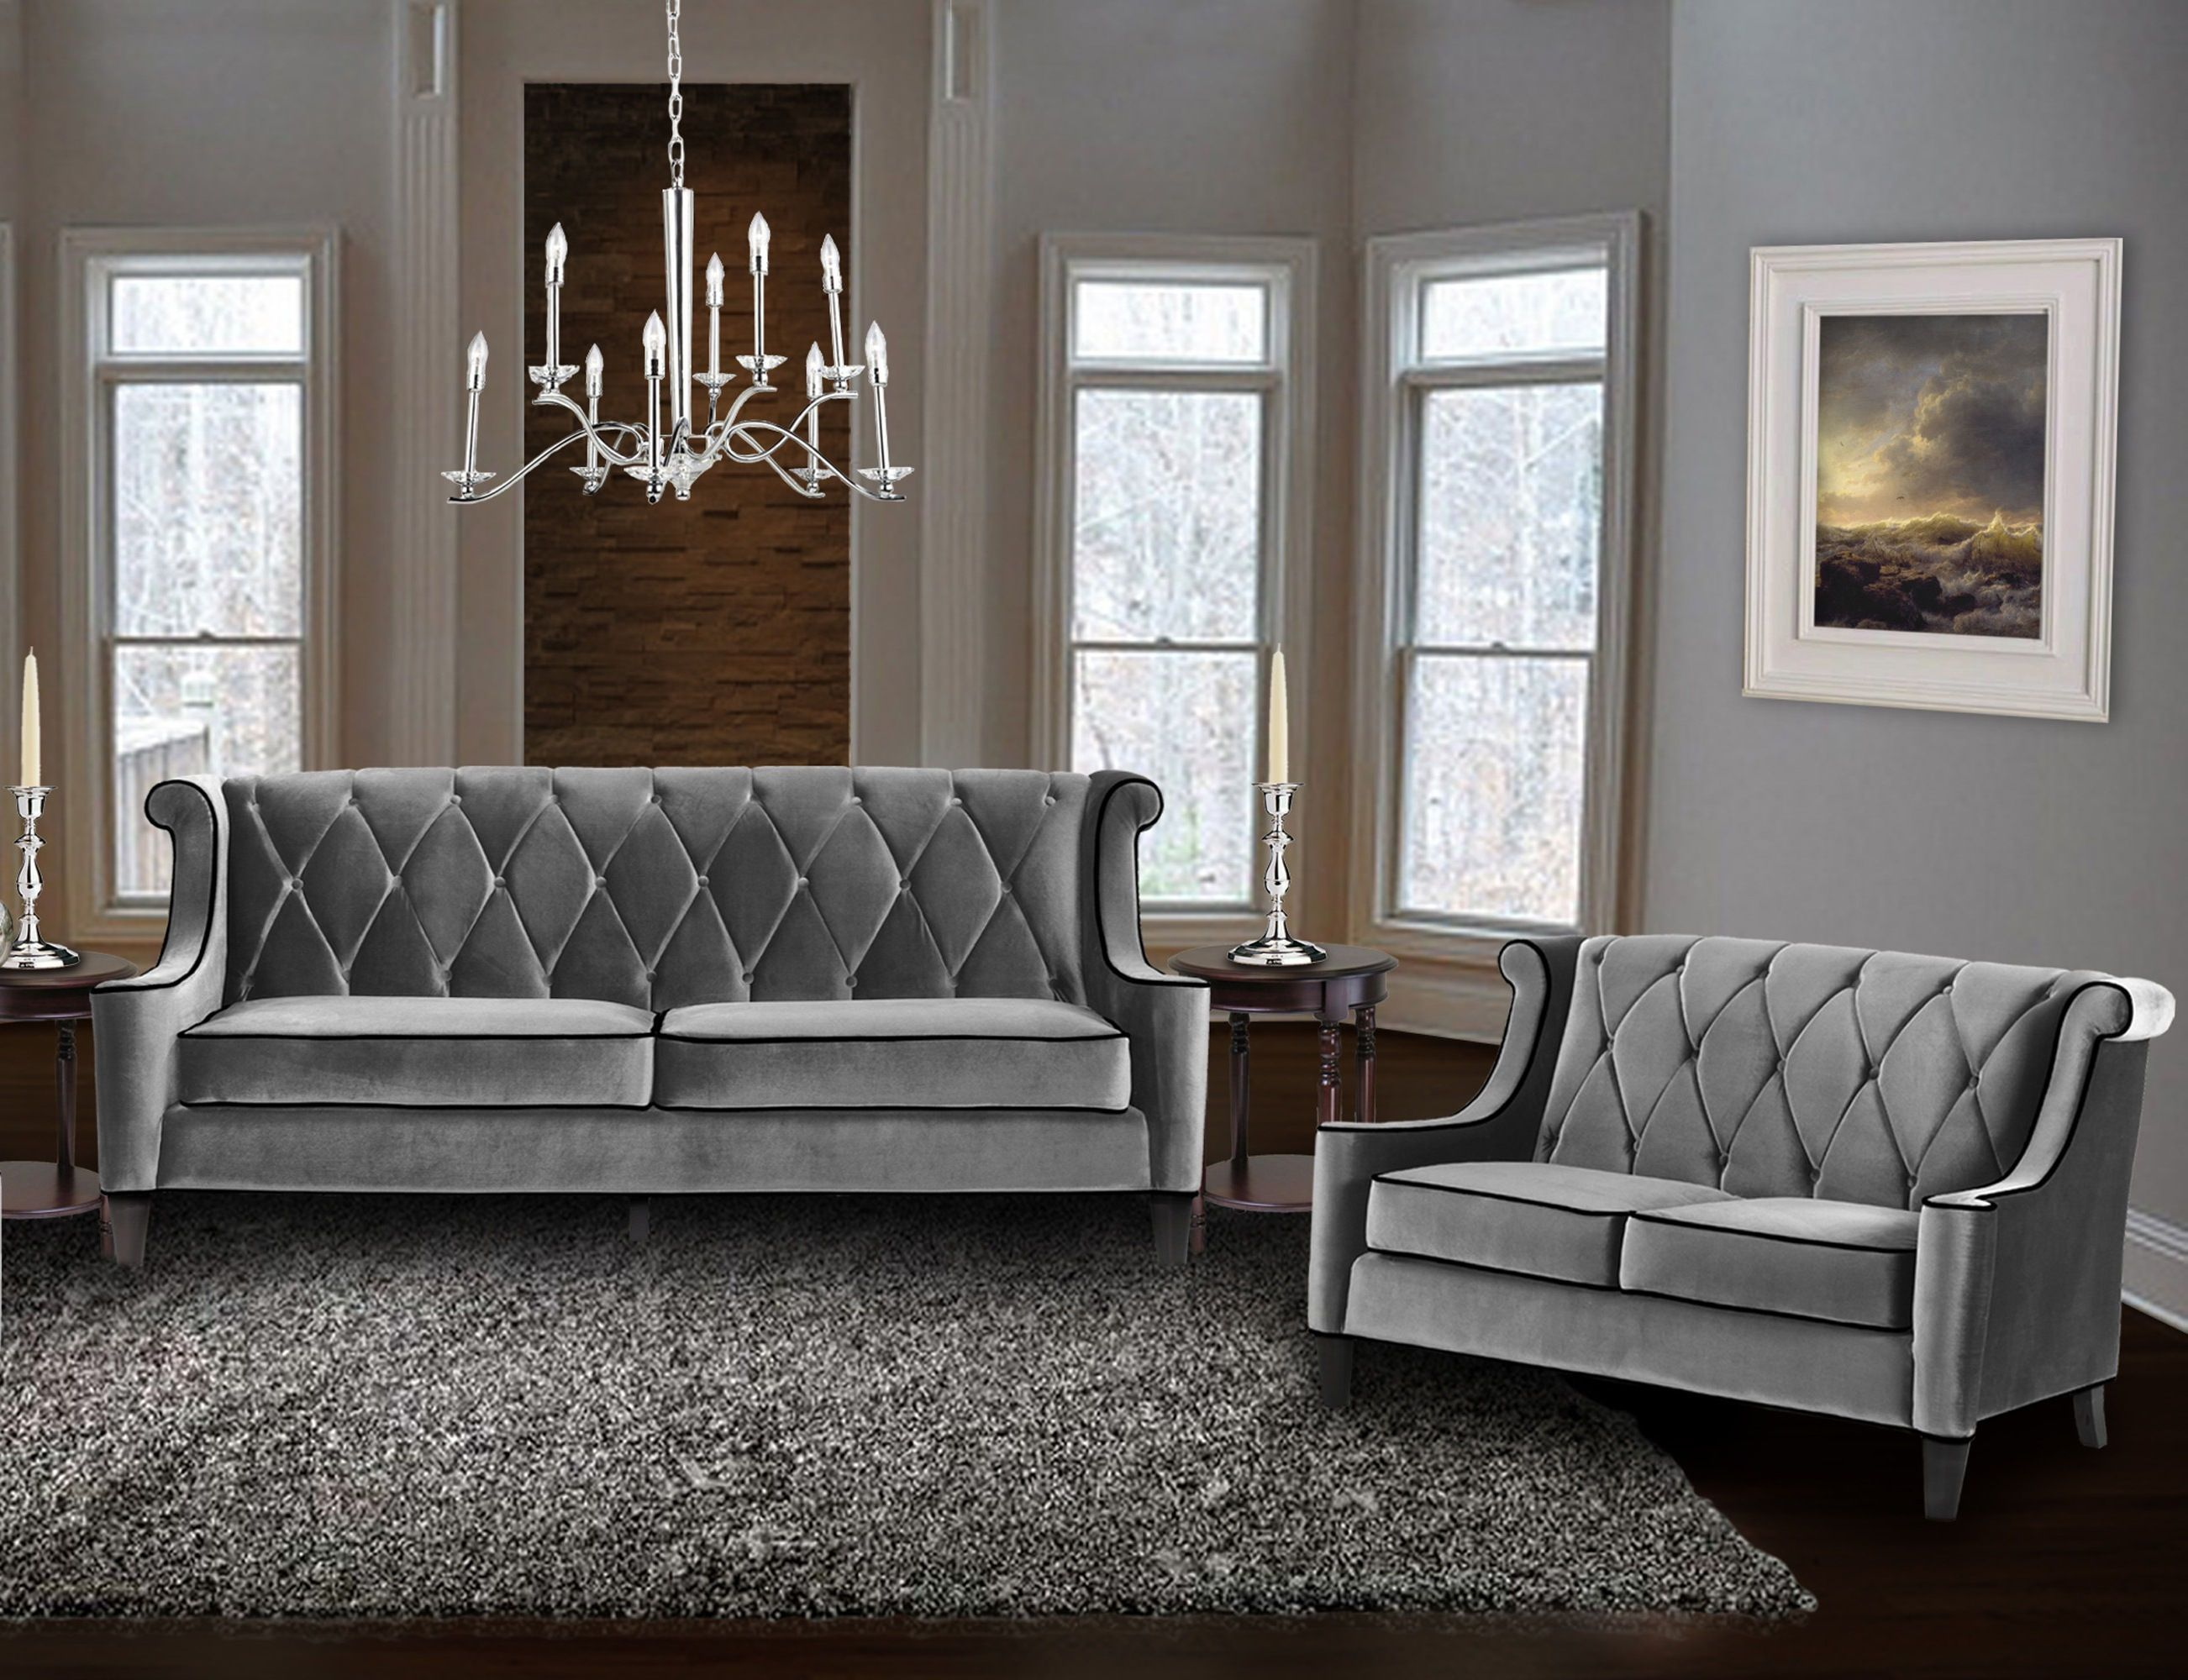 Barrister Gray Velvet Tufted Crystal Buttons 2pc Living Room Set